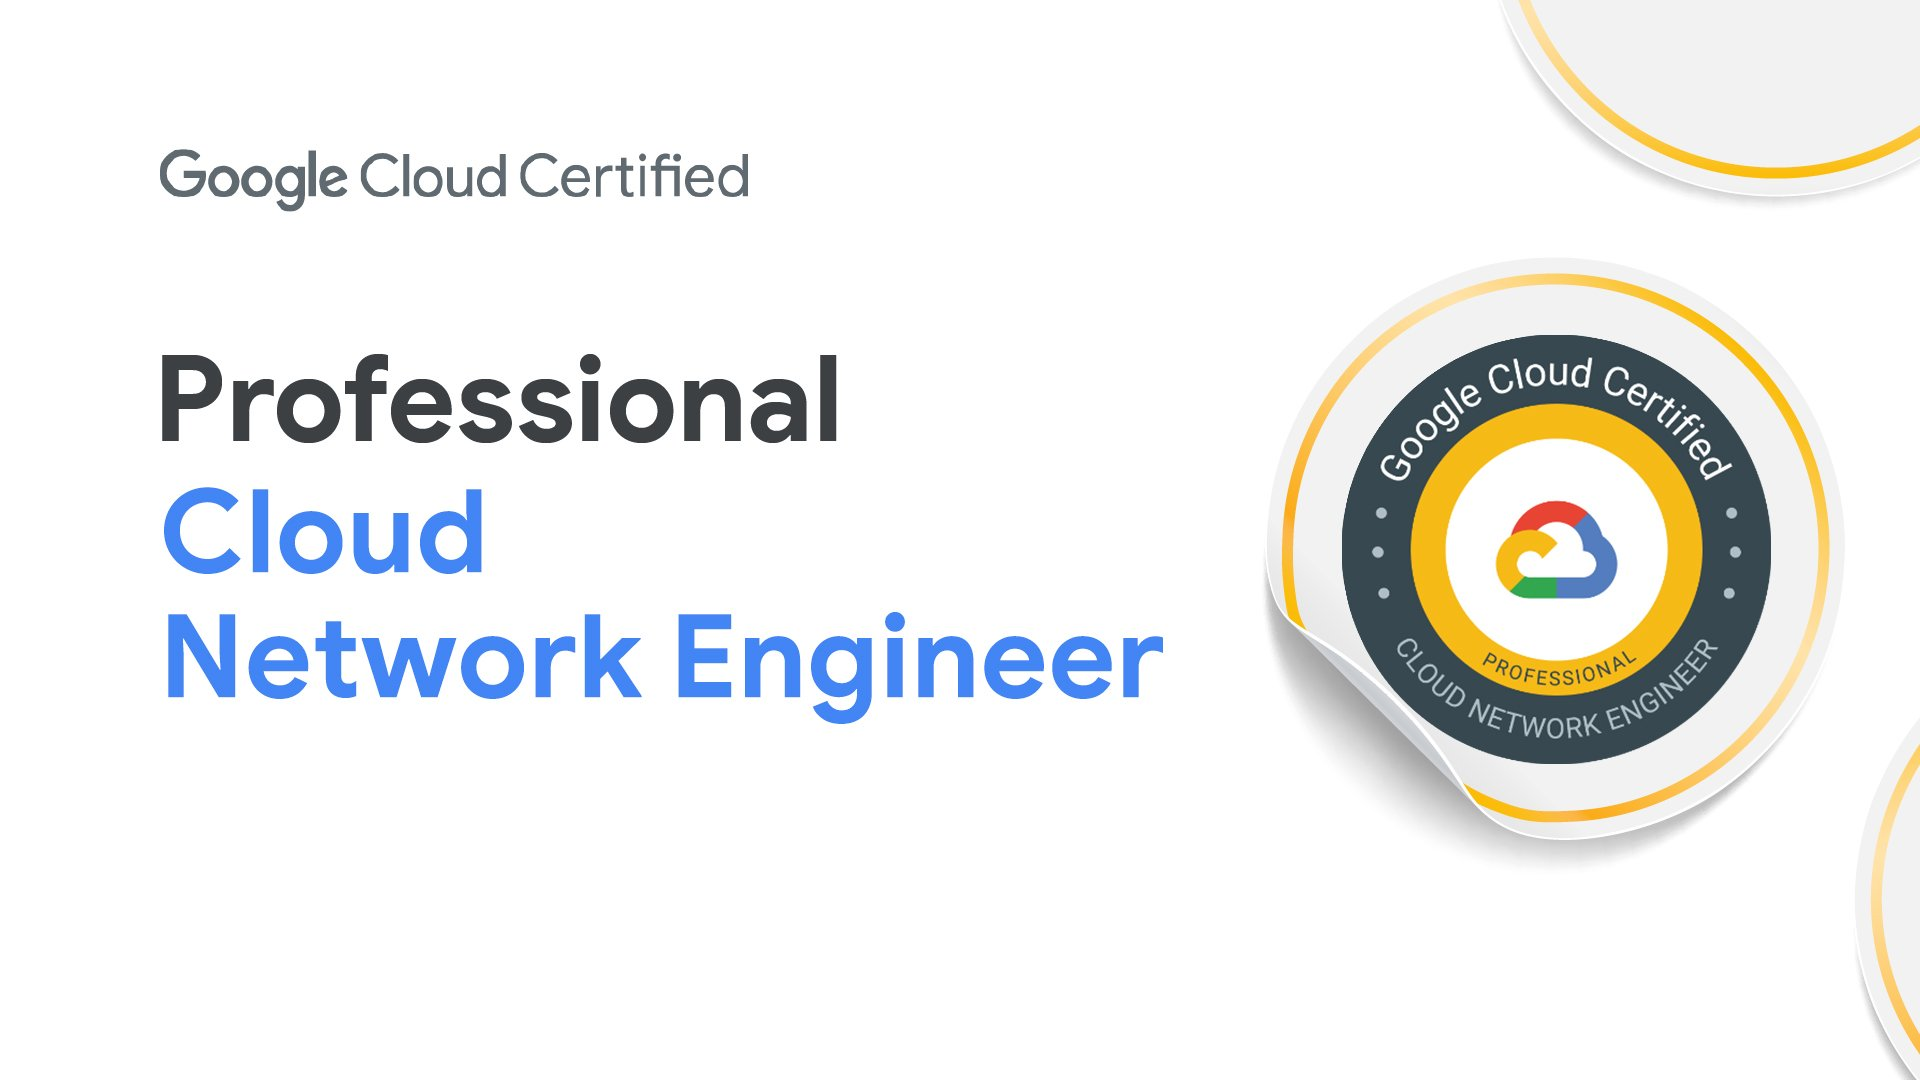 Google Cloud Certified - Professional Cloud Network Engineer